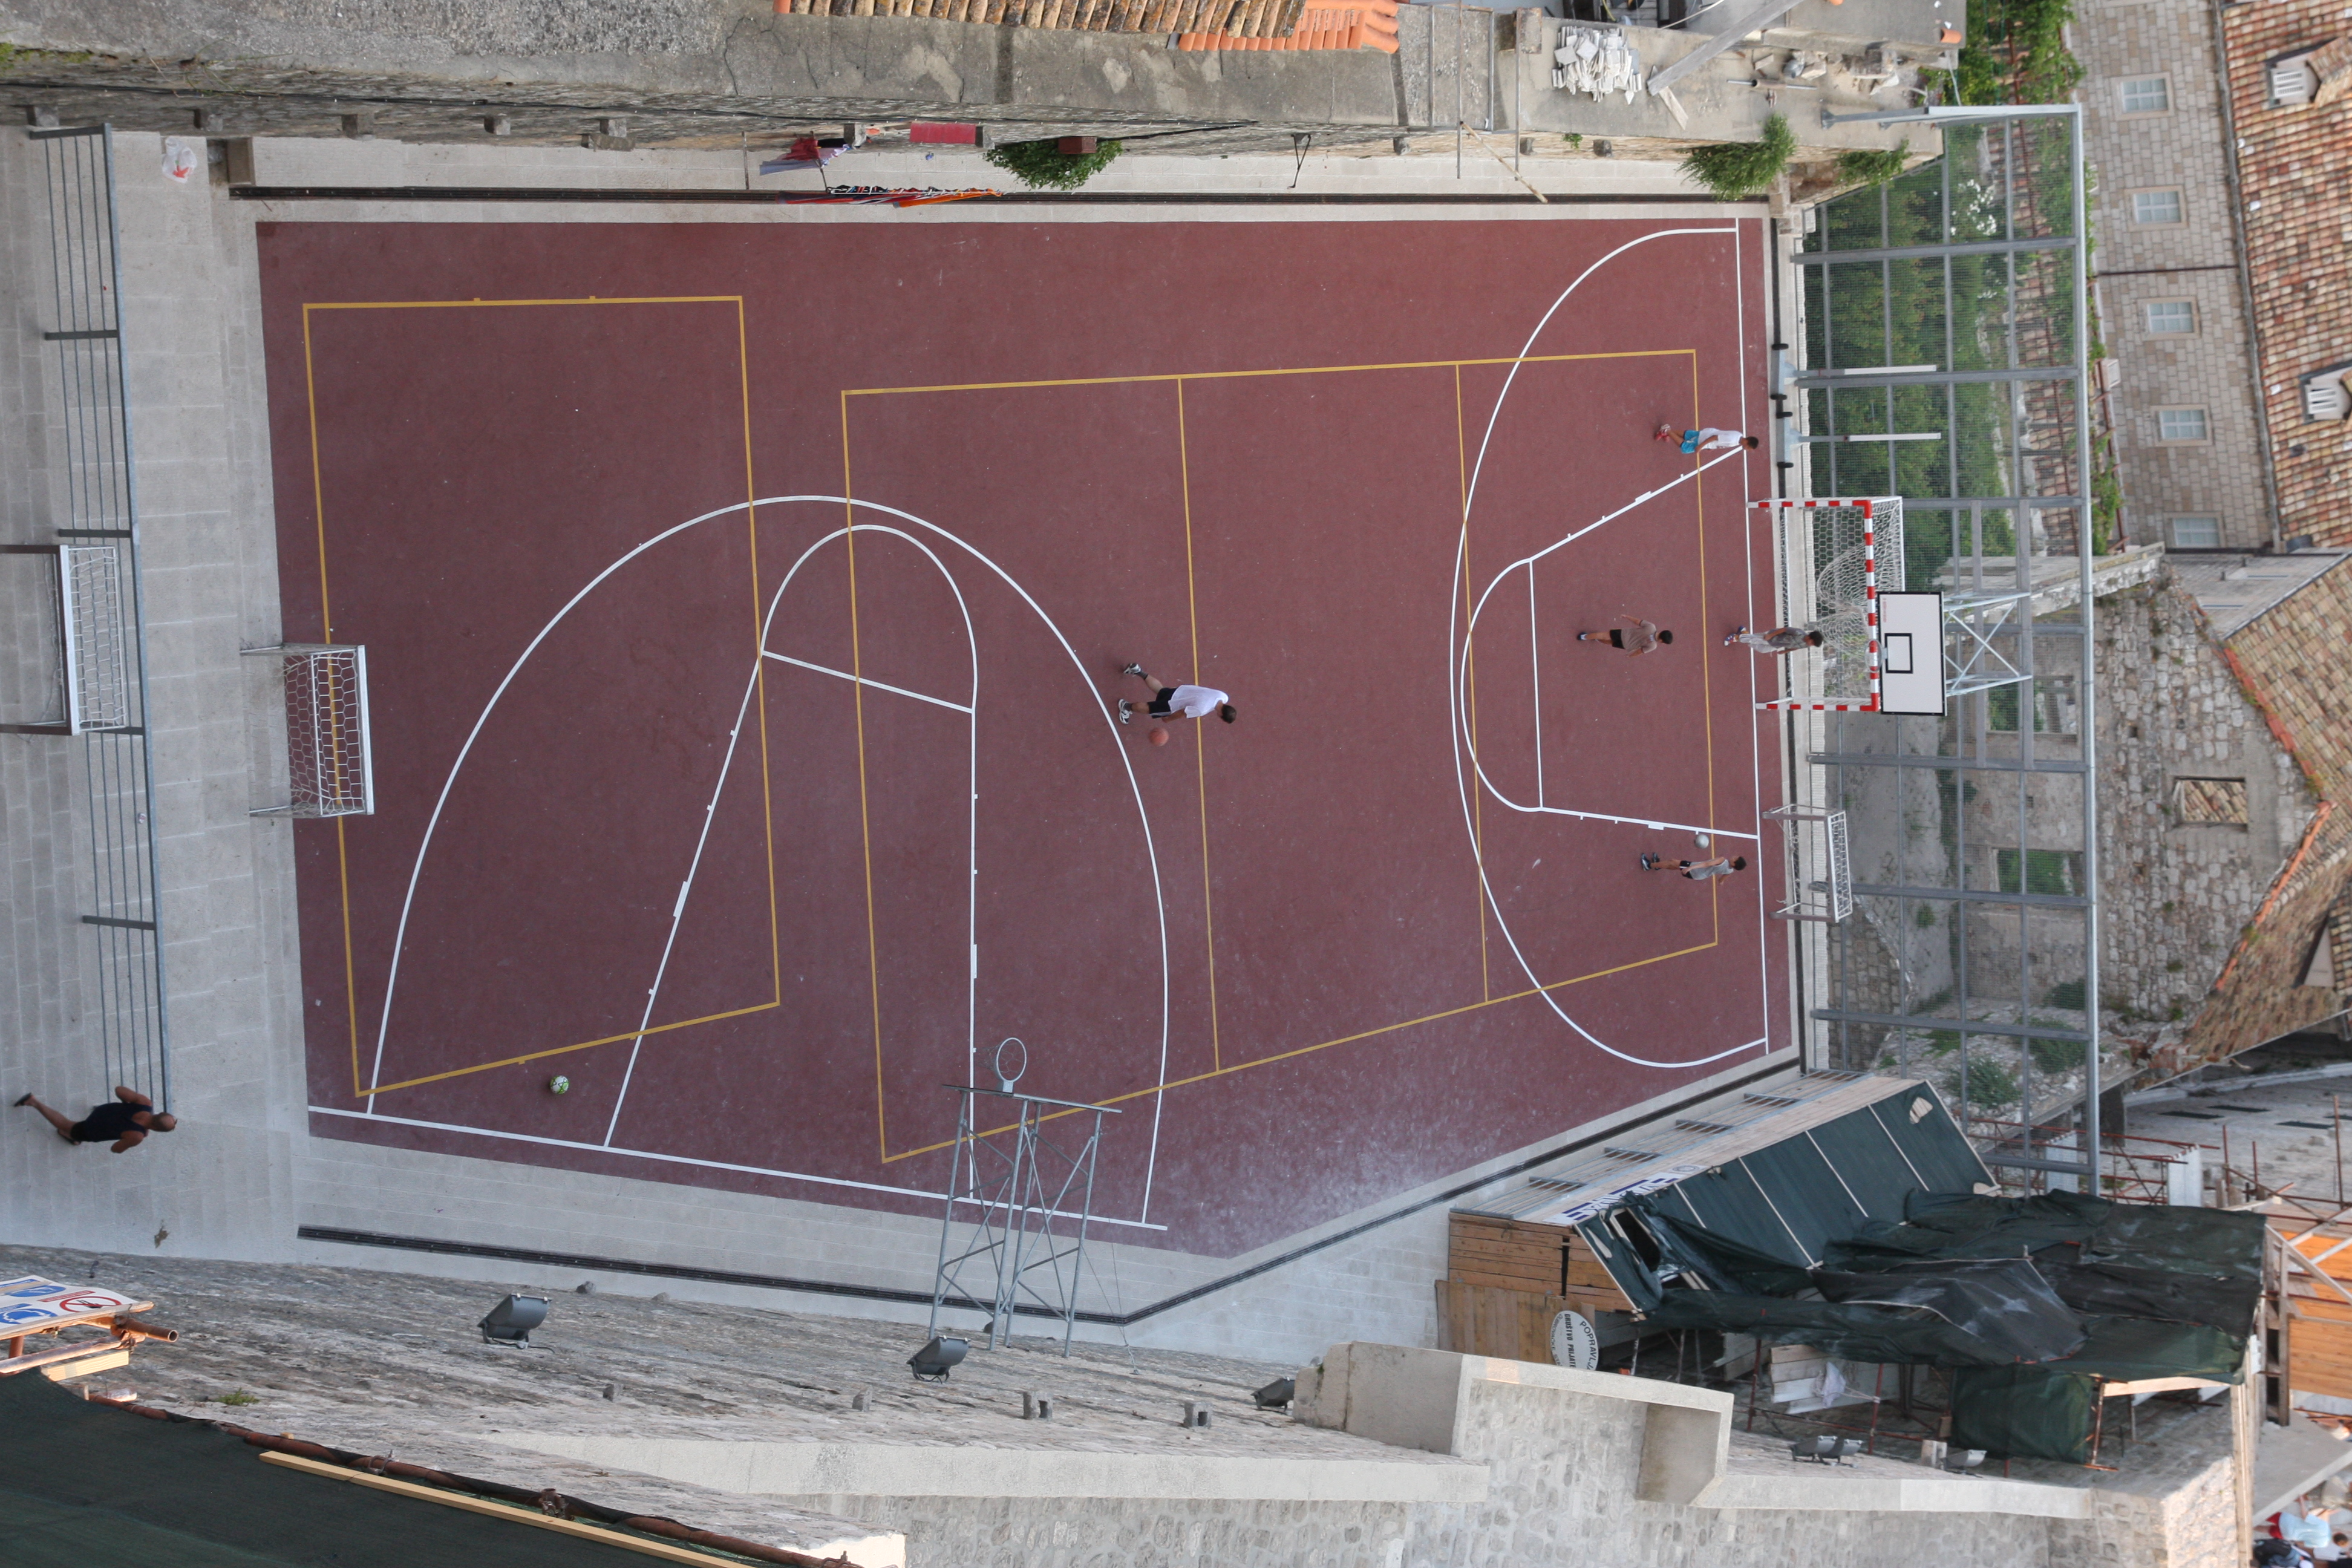 20100805132431_basketball_court_in_dubrovnik.jpg